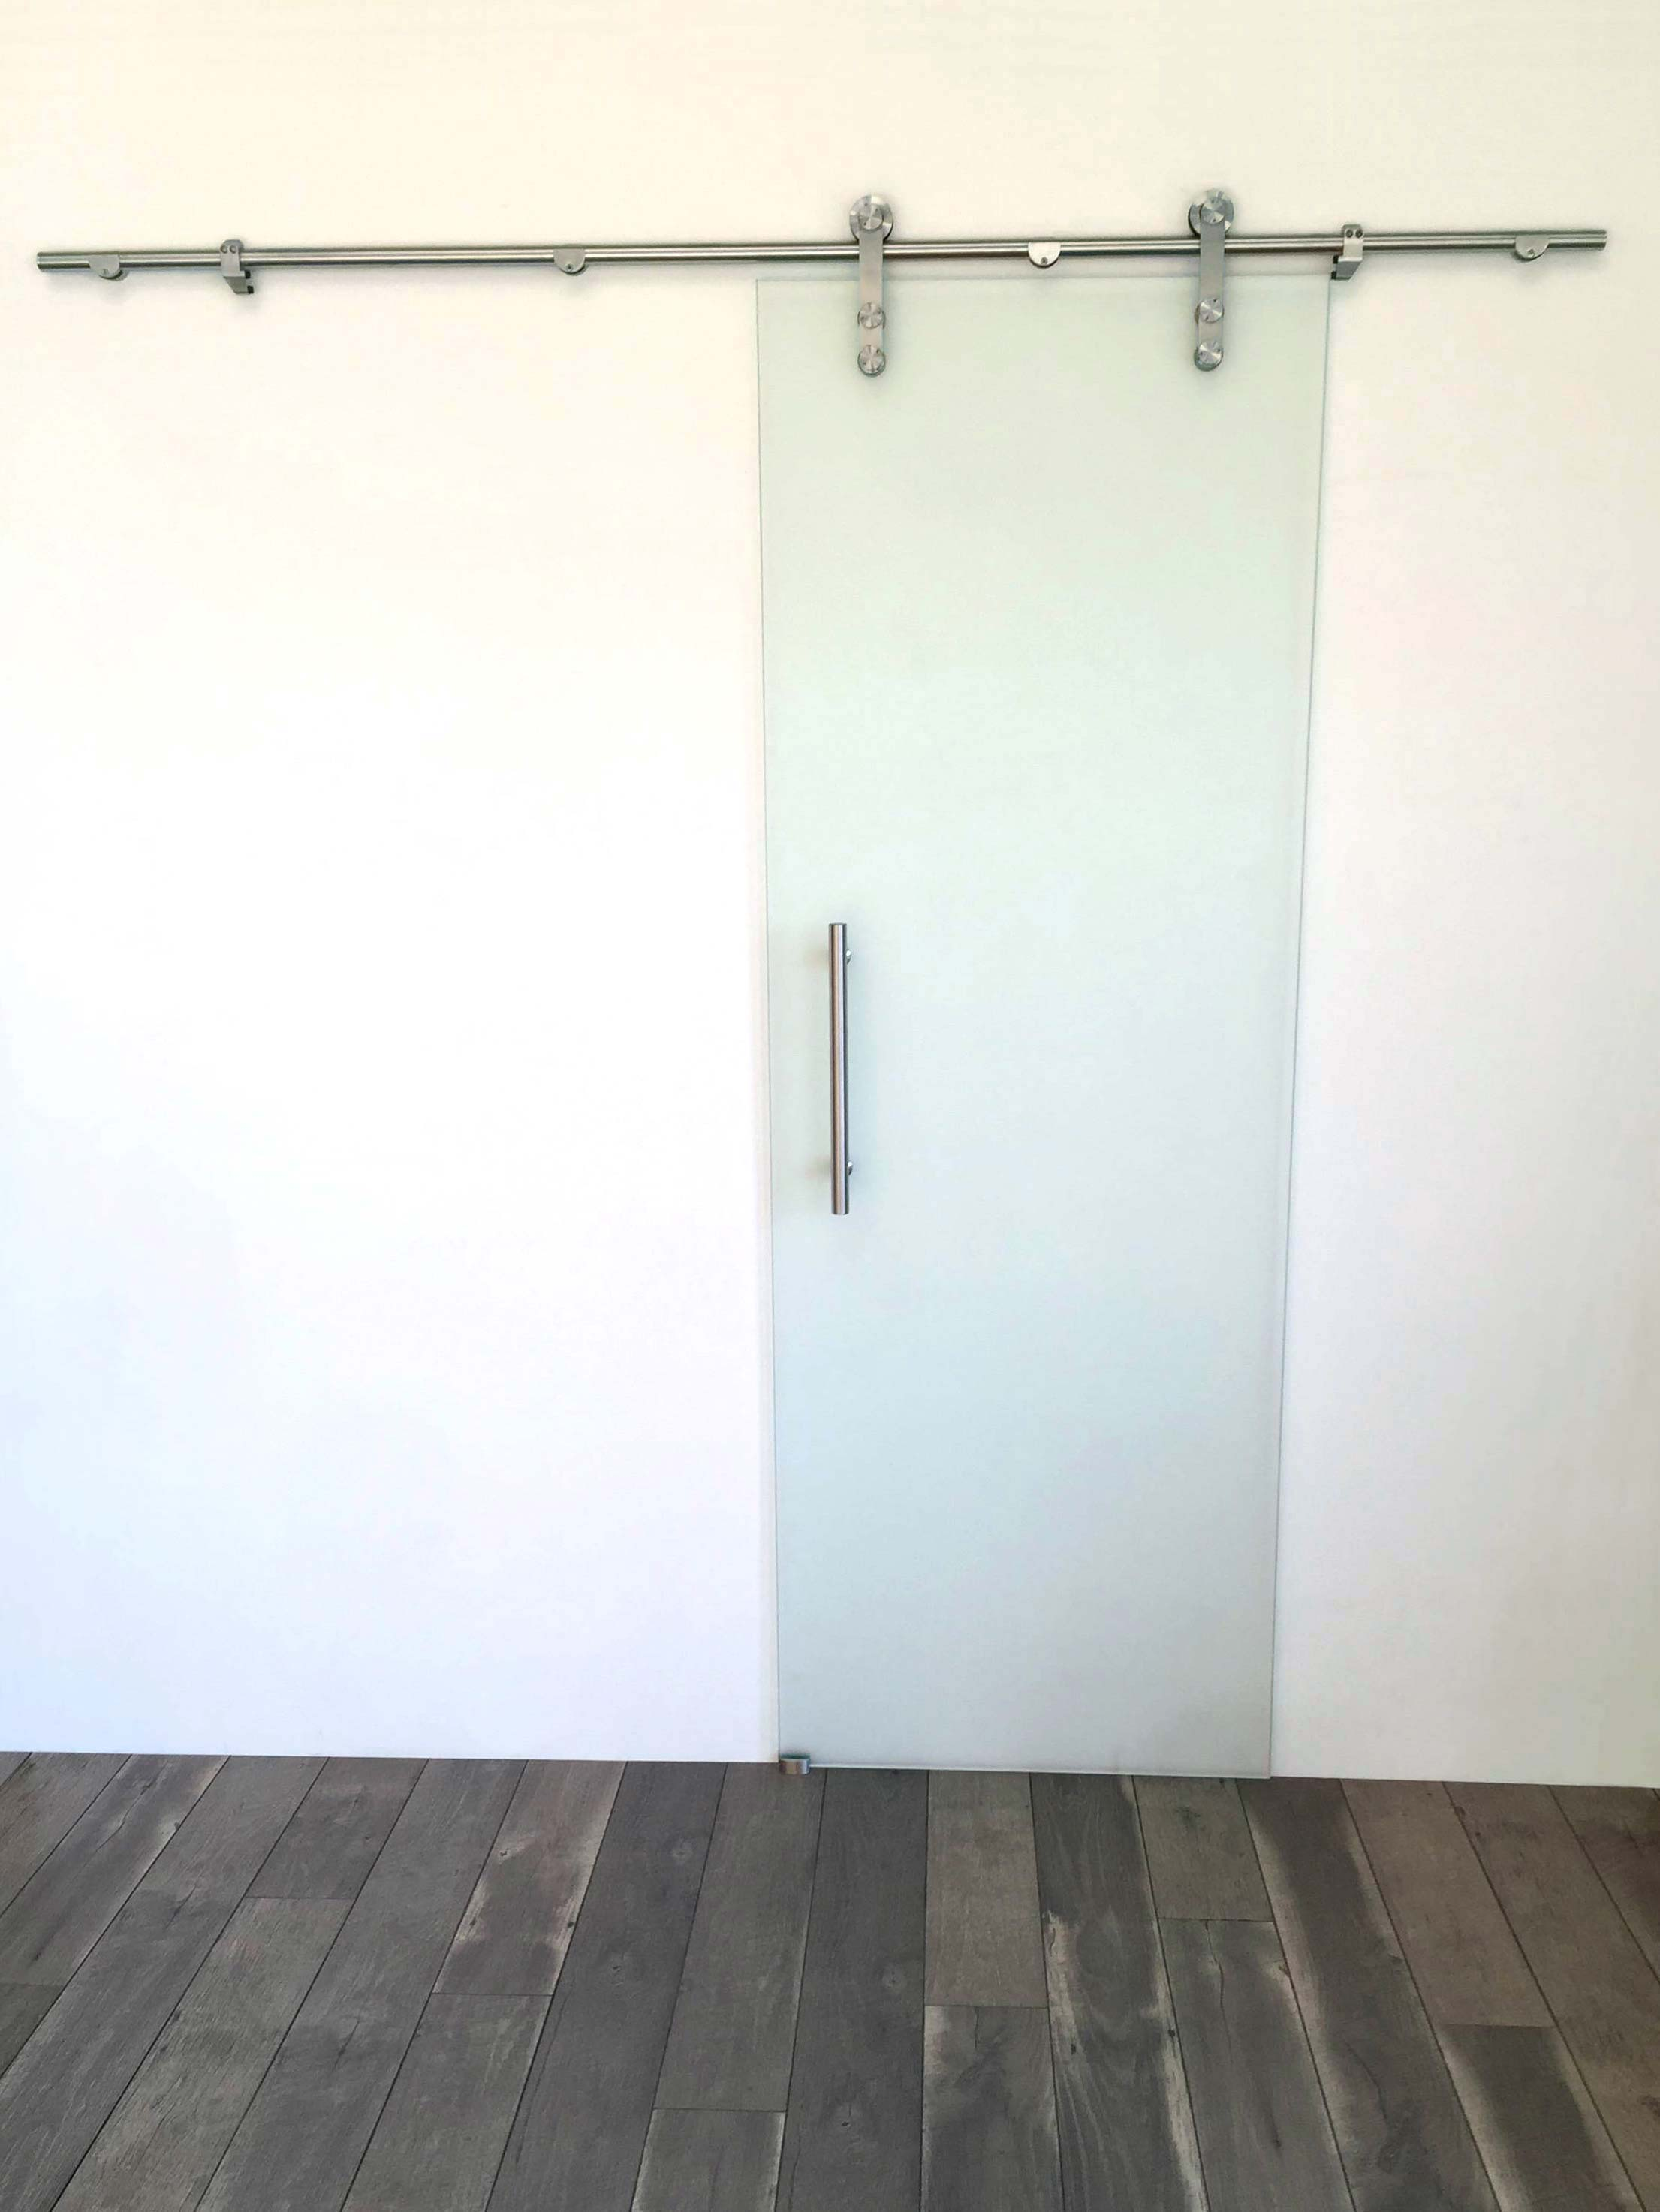 quick view - Frosted Glass Barn Door